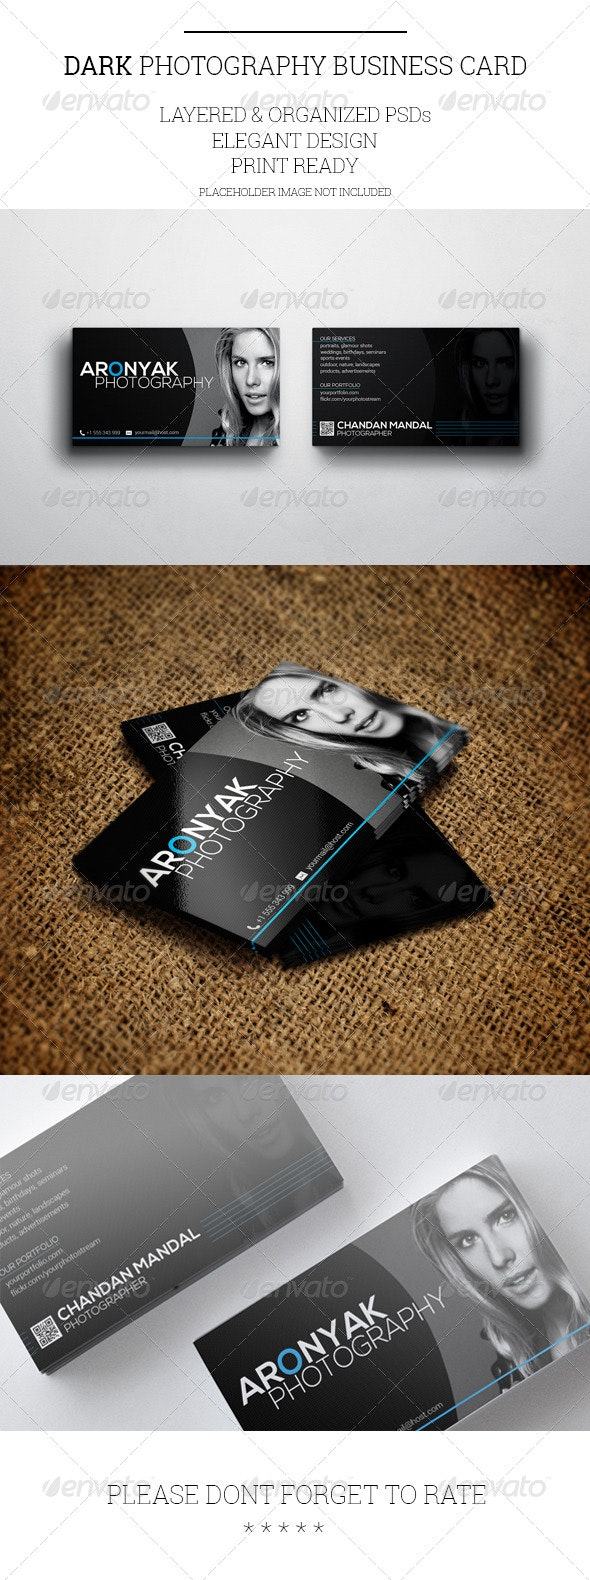 Dark Photography Business Card Template - Industry Specific Business Cards